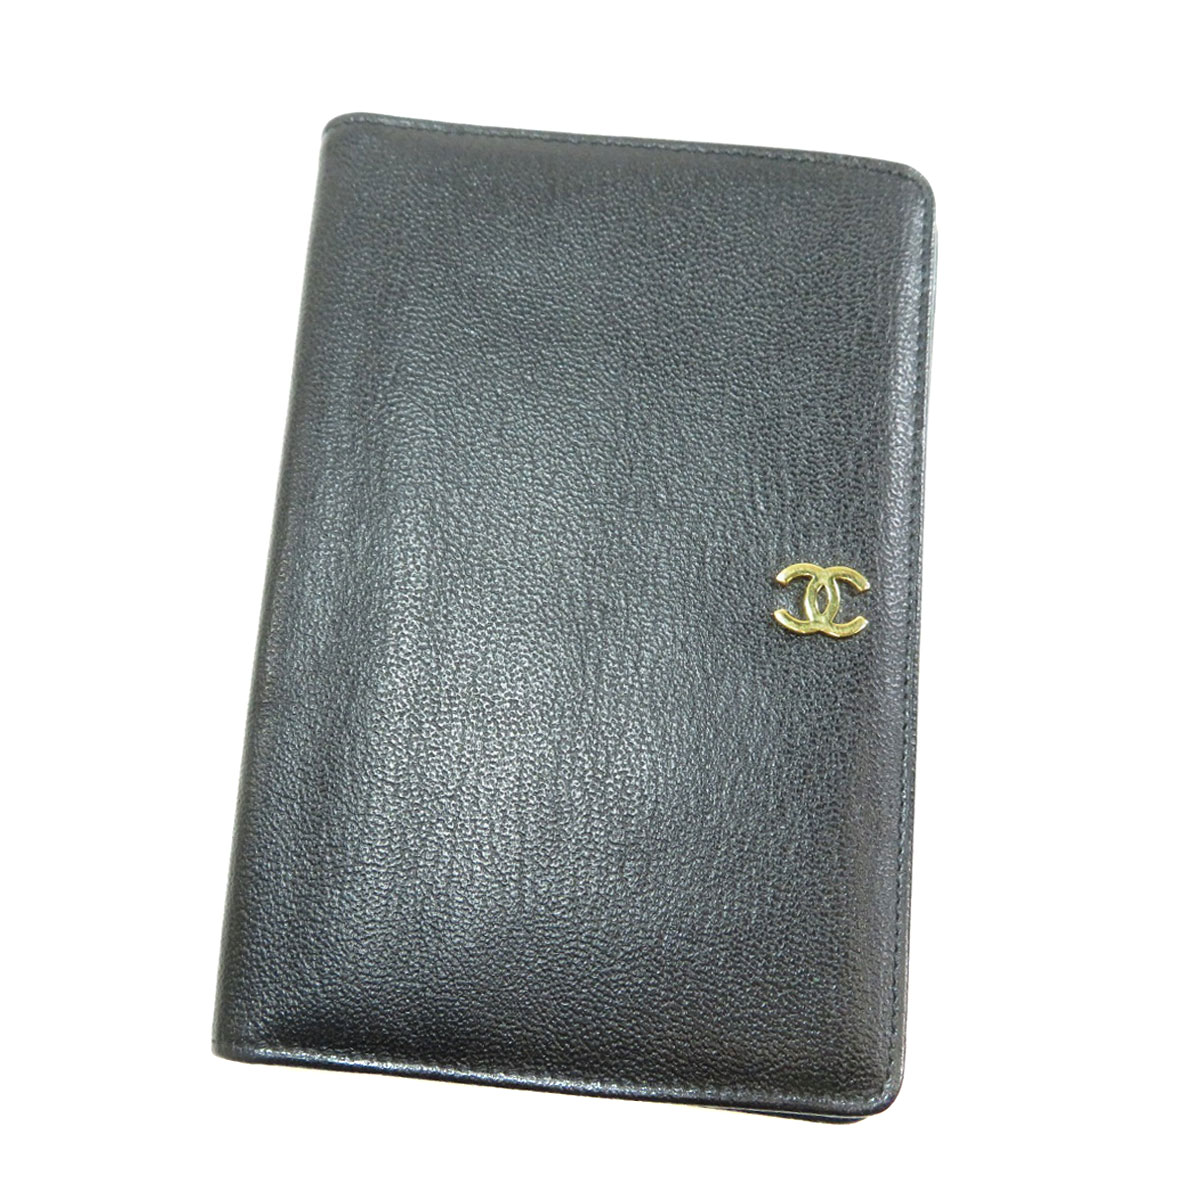 f6724a9daef45b CHANEL 8150 Bifold Wallet with Coin Pocket Leather Women ー The ...